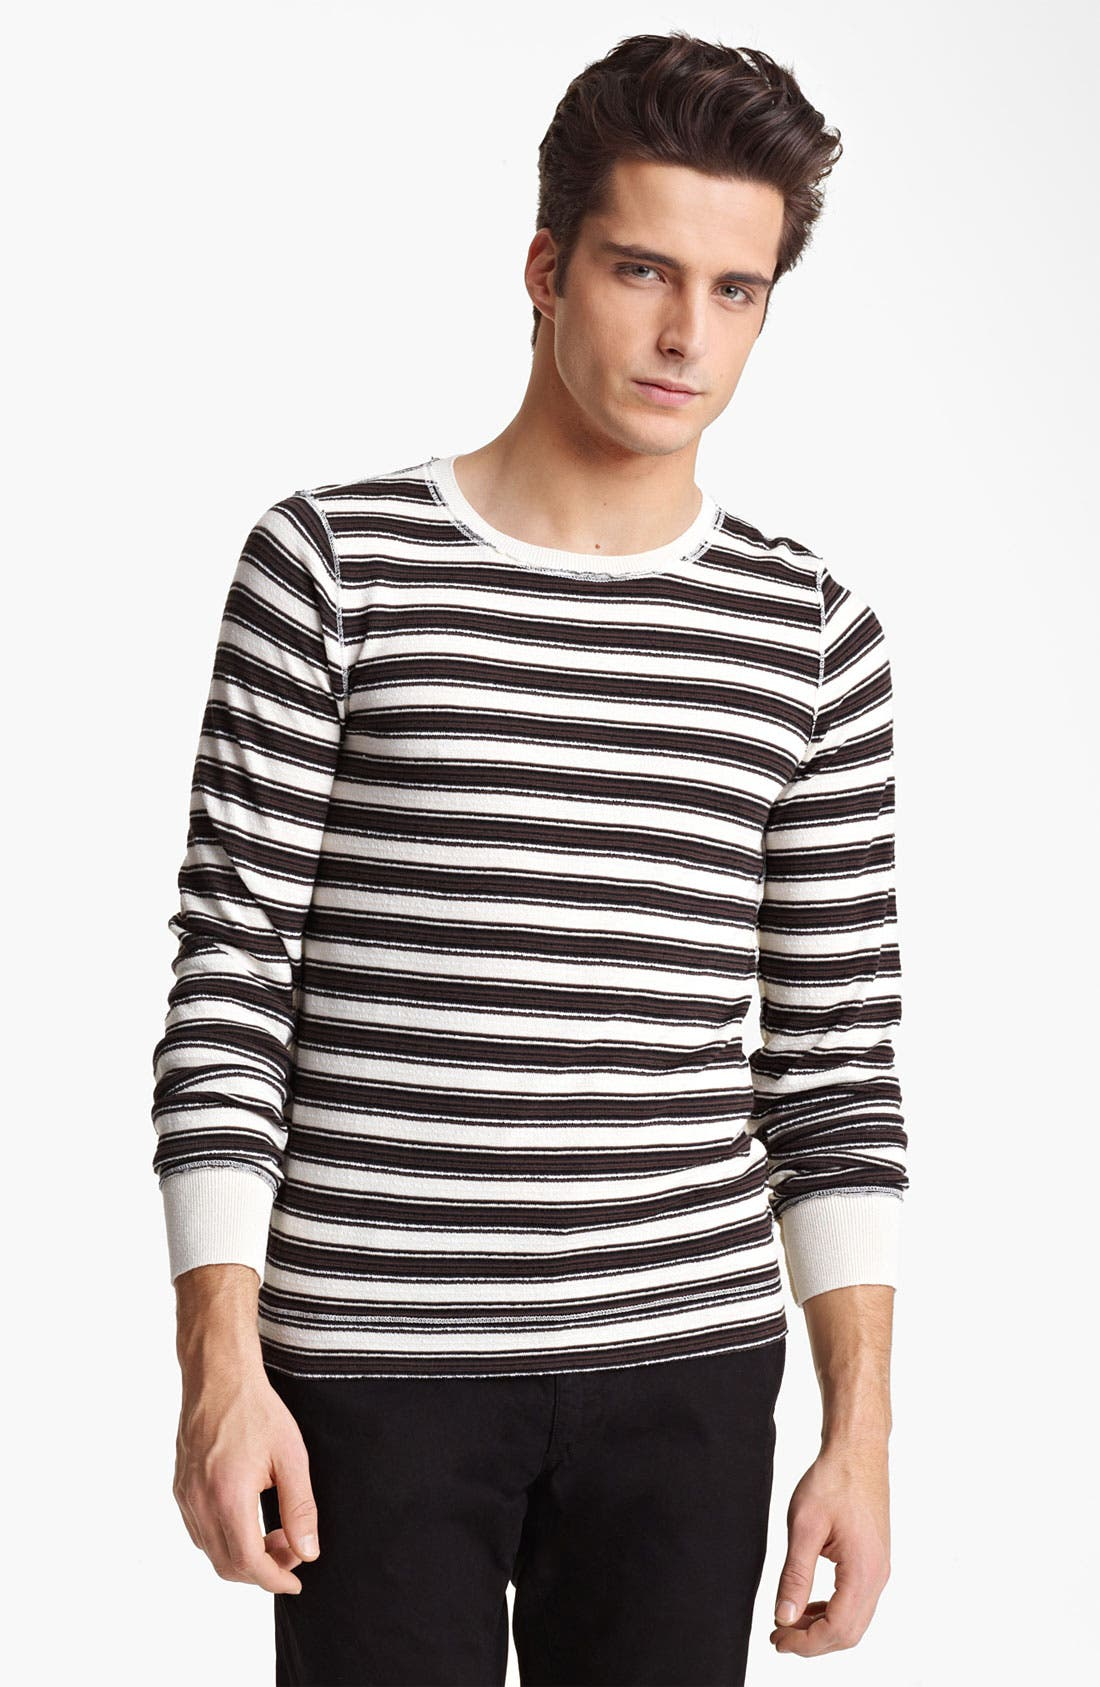 Alternate Image 1 Selected - Dolce&Gabbana Stripe Crewneck Sweater